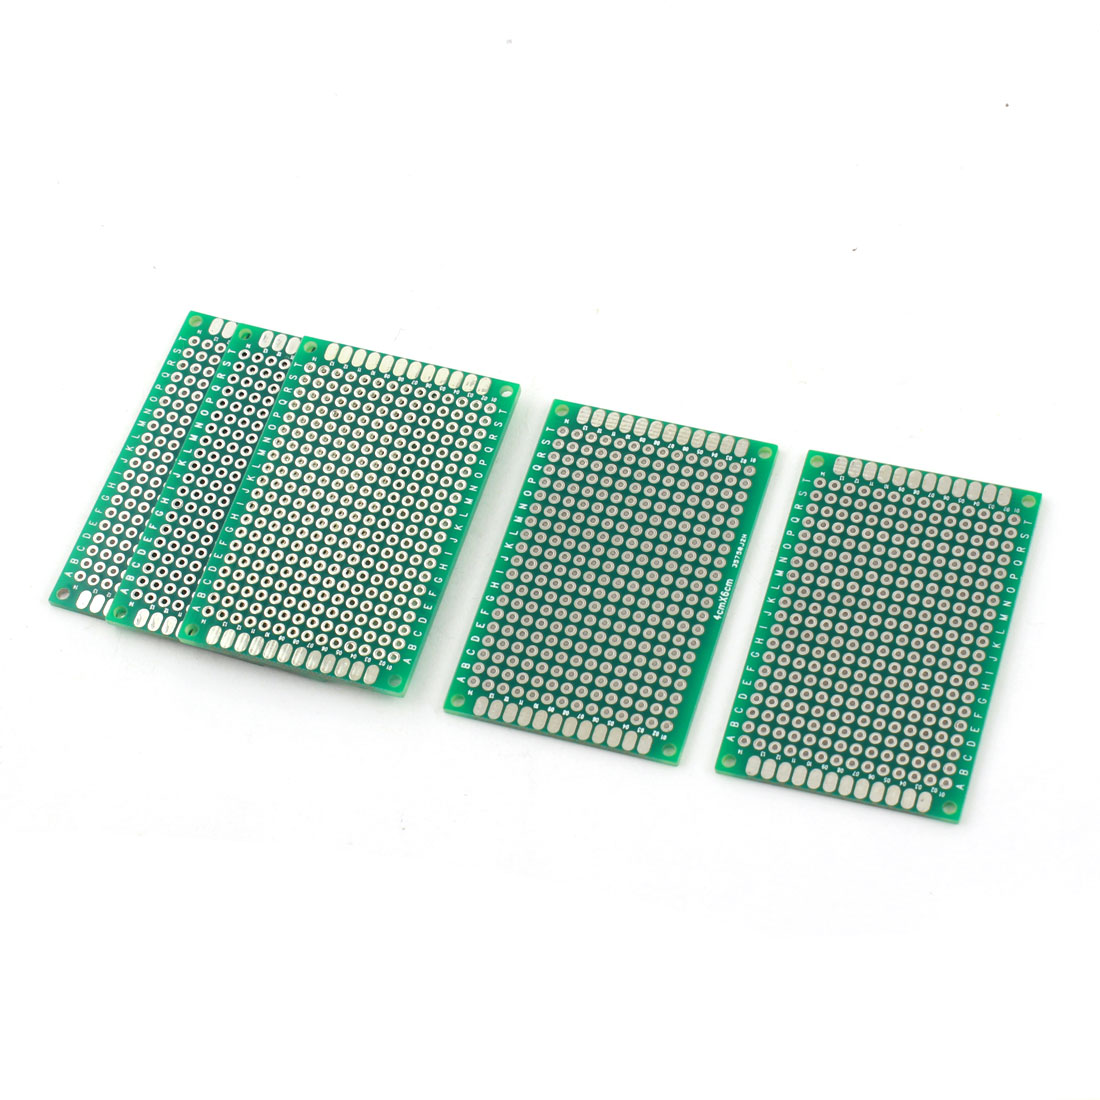 5Pcs 6cm x 4cm 2.54mm Pitch Two Side Tin Plated Universal Prototype PCB Printed Circuit Board